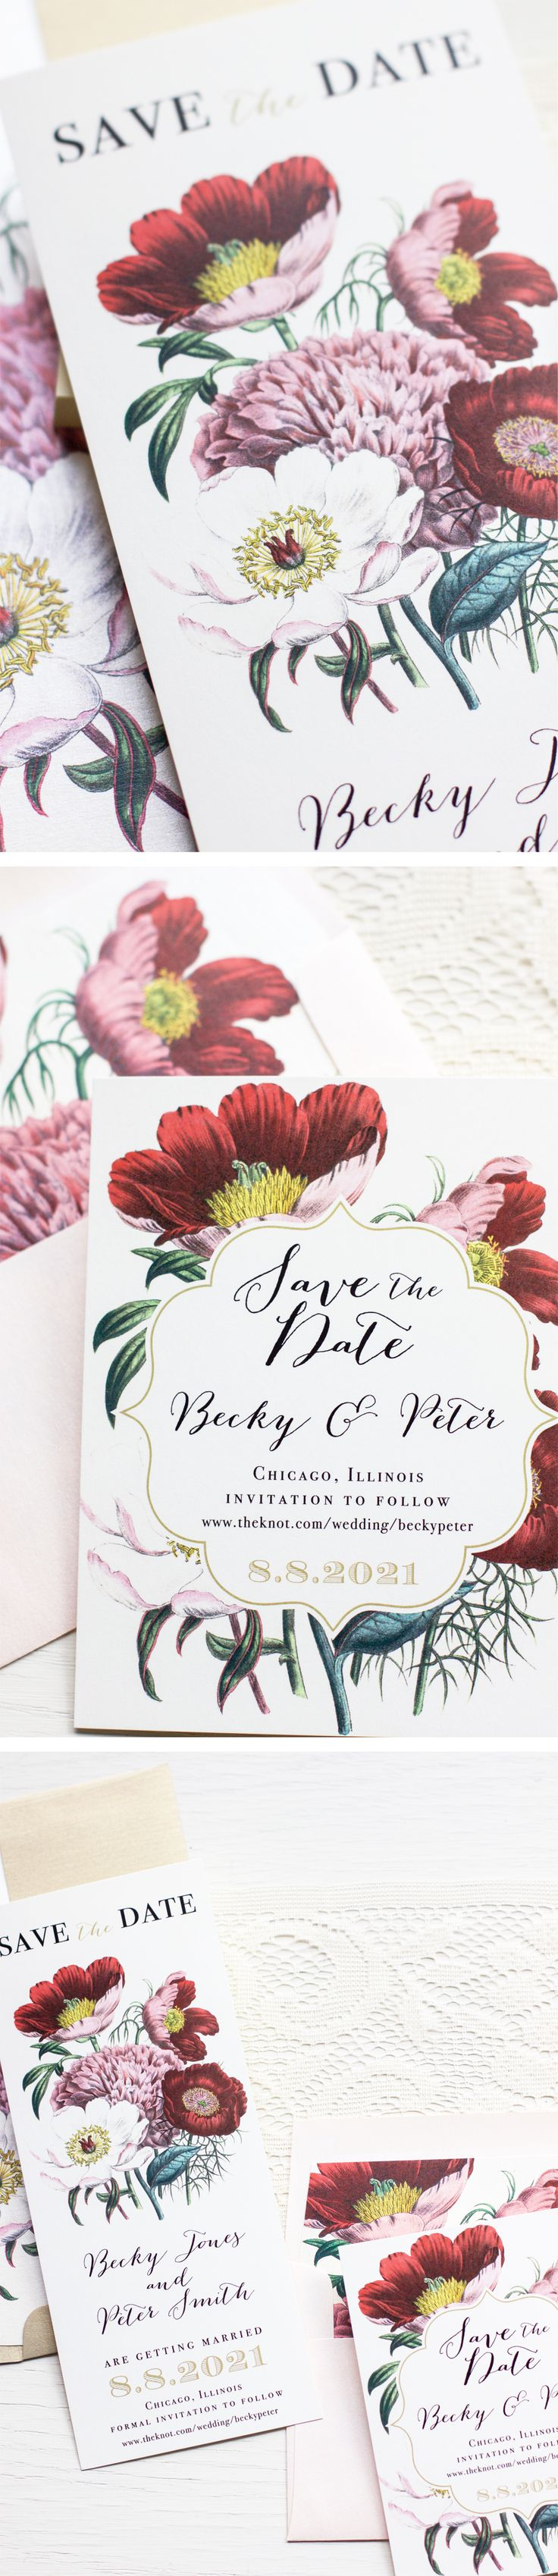 It's a garden party! Floral Boho save the dates, inspired by heirloom garden blooms and boho brides.